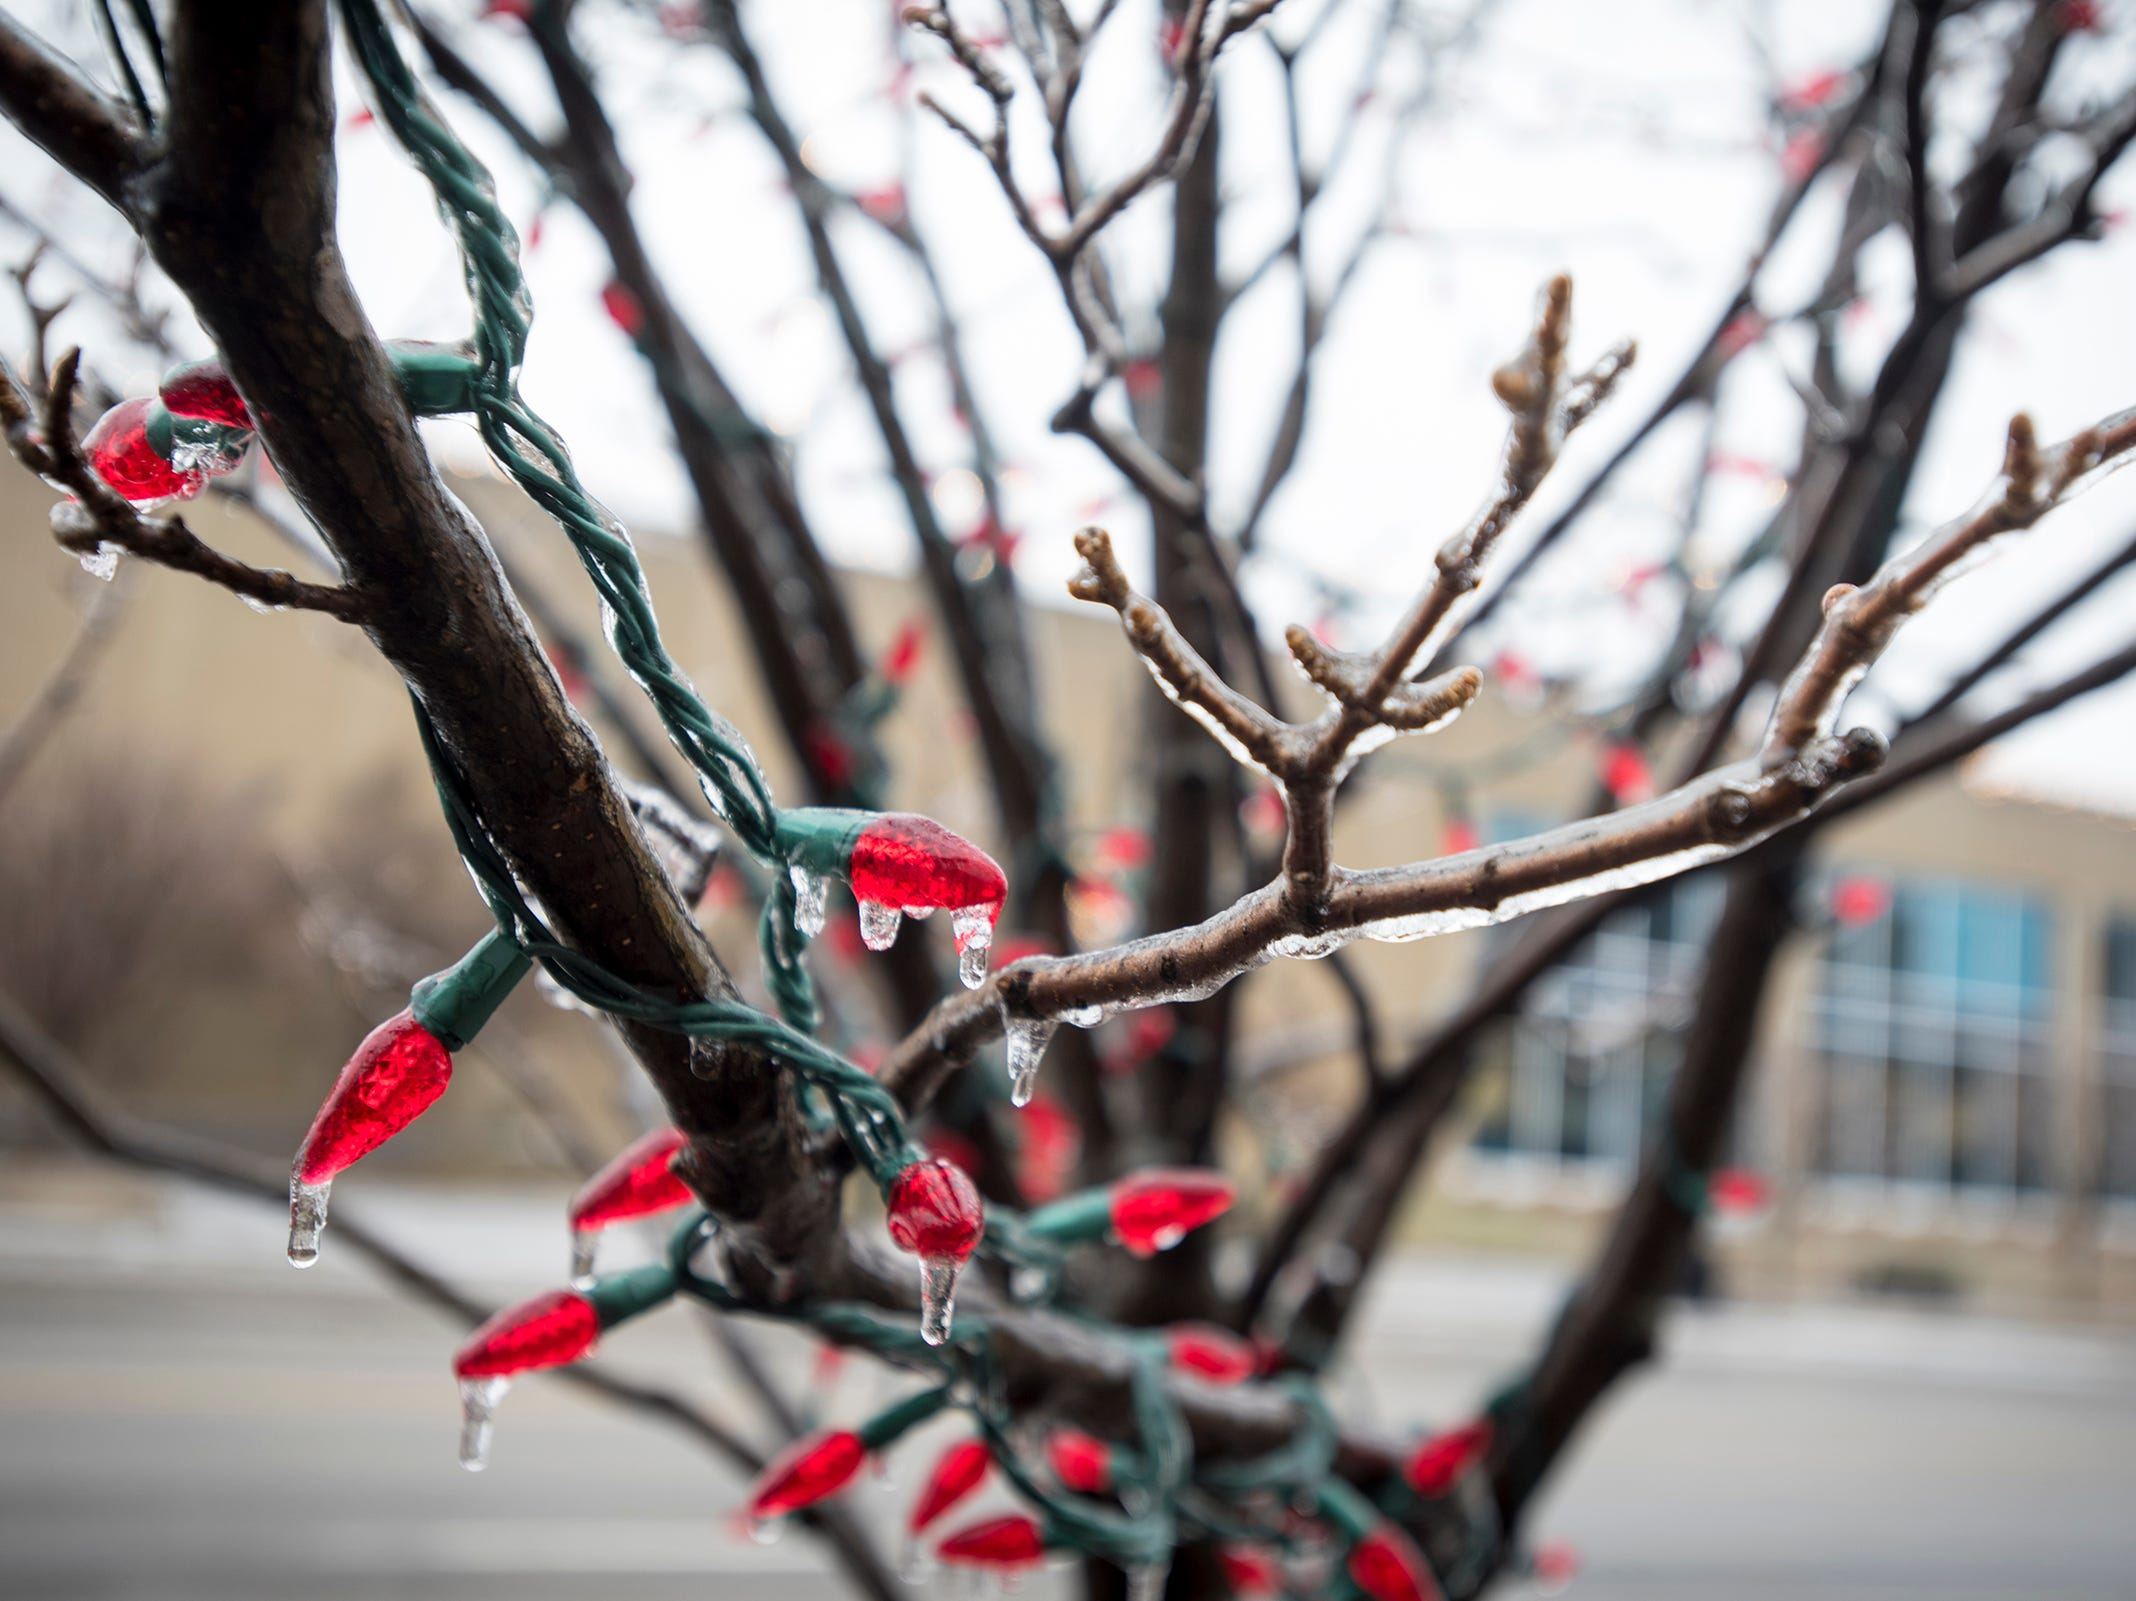 Ice coats a tree branch Wednesday, Feb. 6, 2019 in downtown Port Huron. Overnight saw sleet and icing, according to the National Weather Service and freezing rain could continue periodically throughout the day.